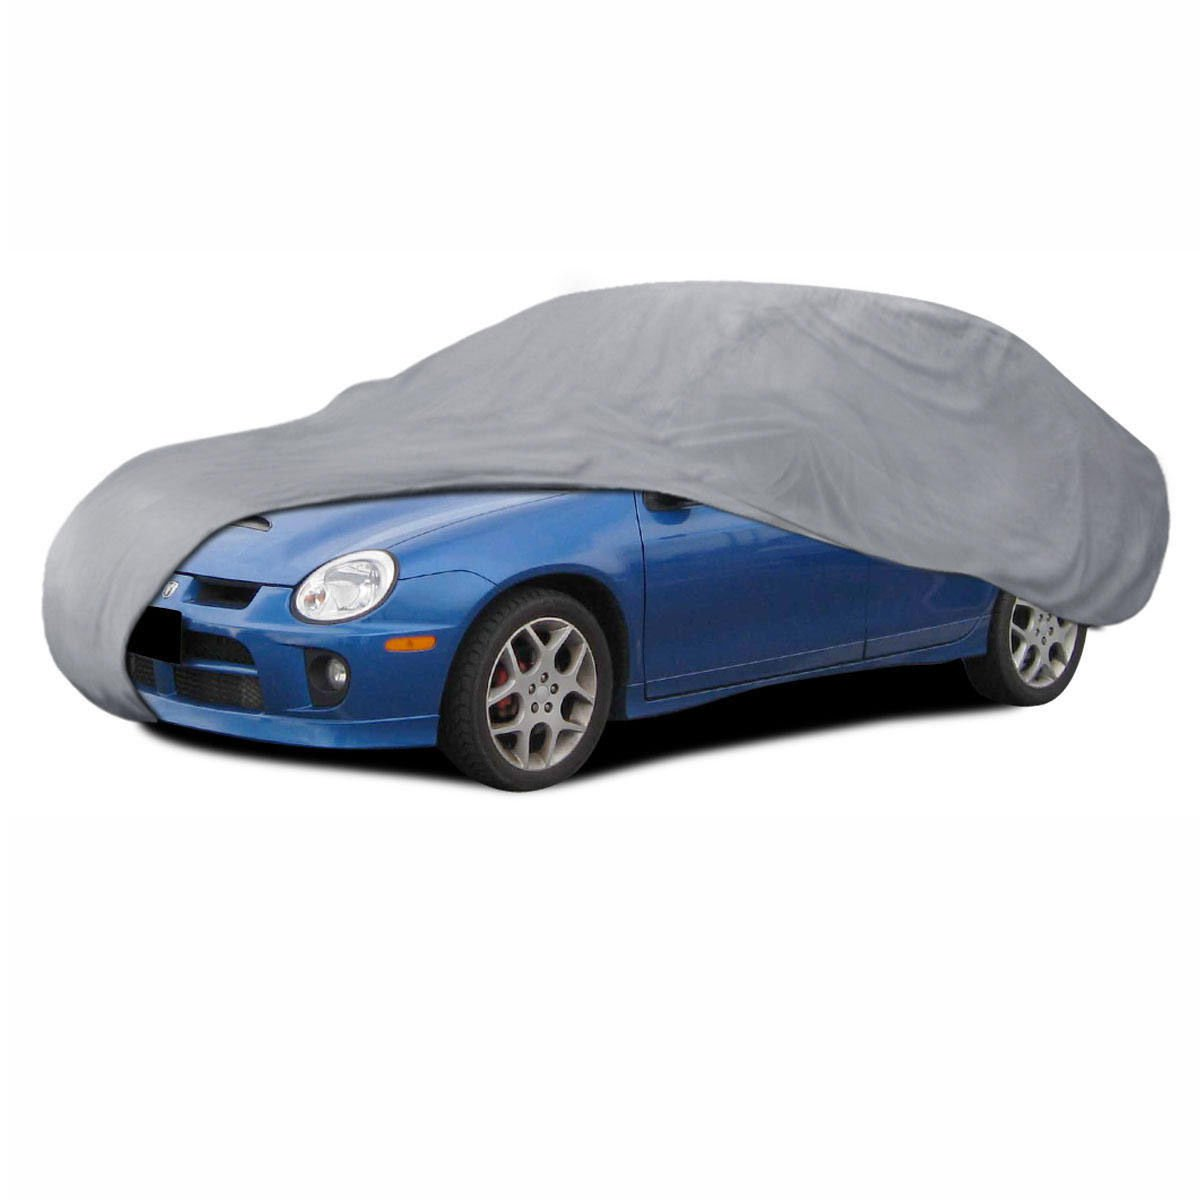 car cover for chrysler le baron 82 94 outdoor waterproof sun dust 4 layers. Black Bedroom Furniture Sets. Home Design Ideas